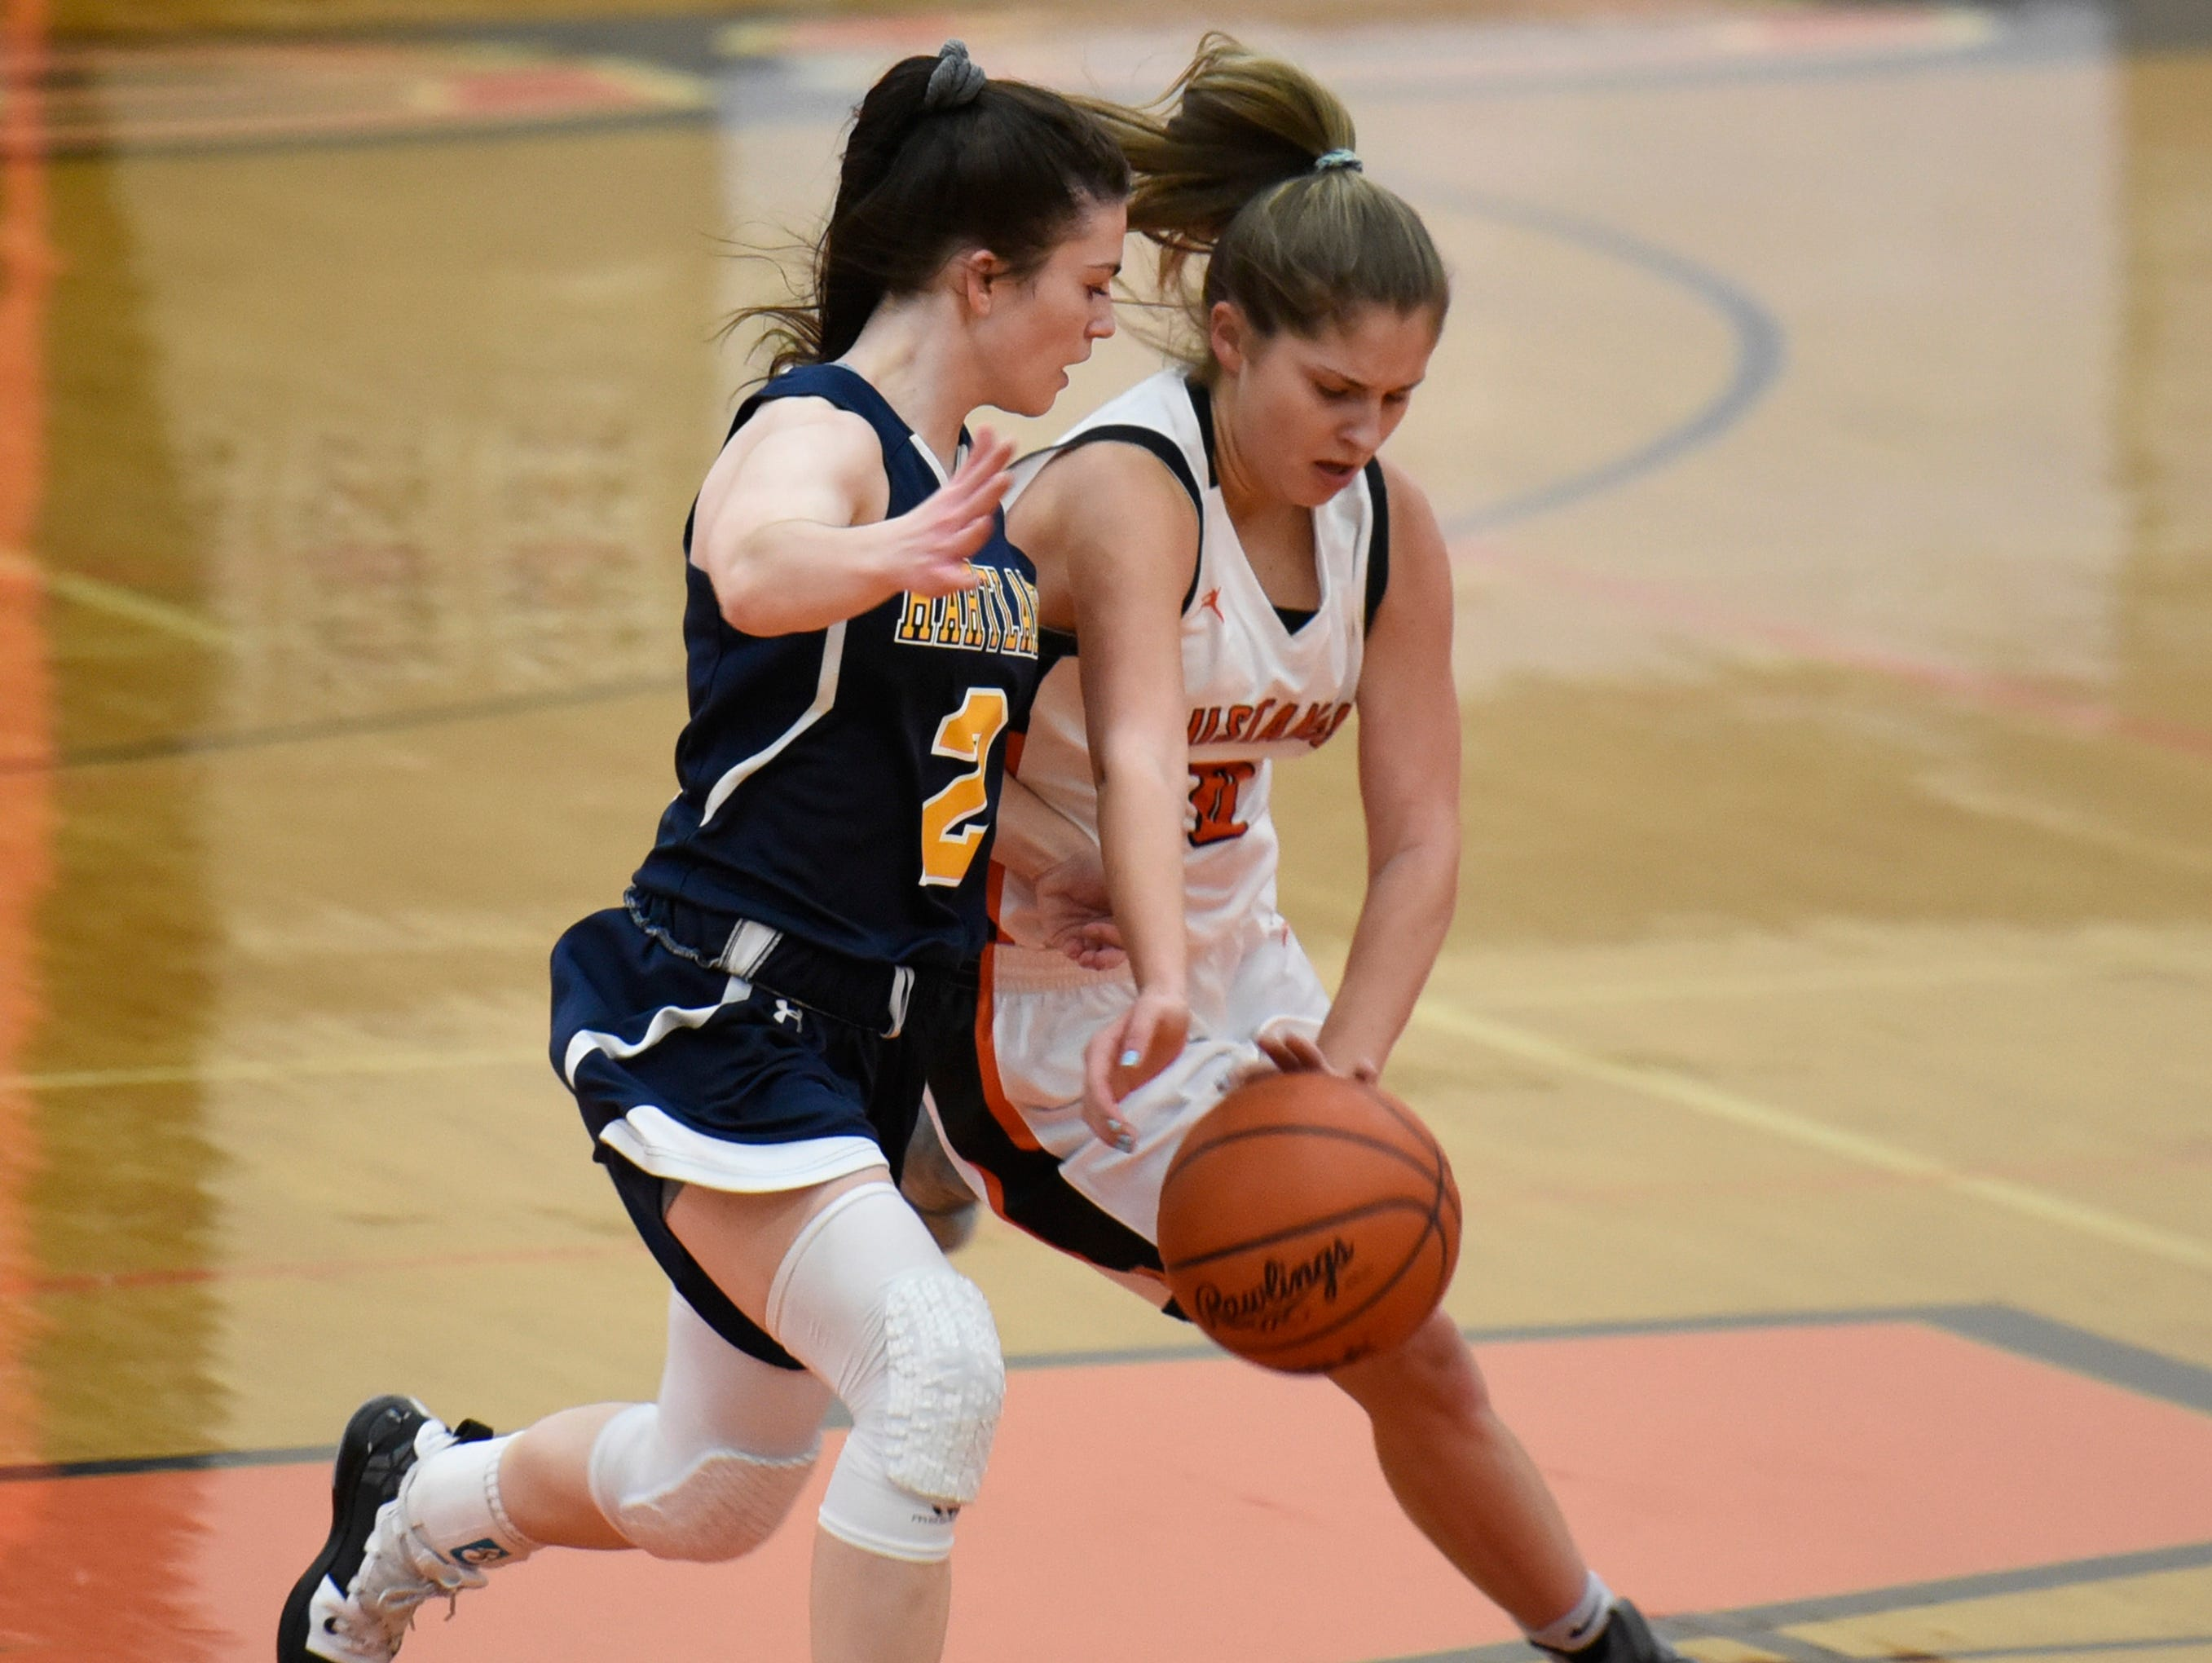 Hartland's Syd Caddell (2) and Northville's Lauren Marshall (0) during a KLAA match up between the Mustangs and Eagles at Northville Jan. 8, 2019